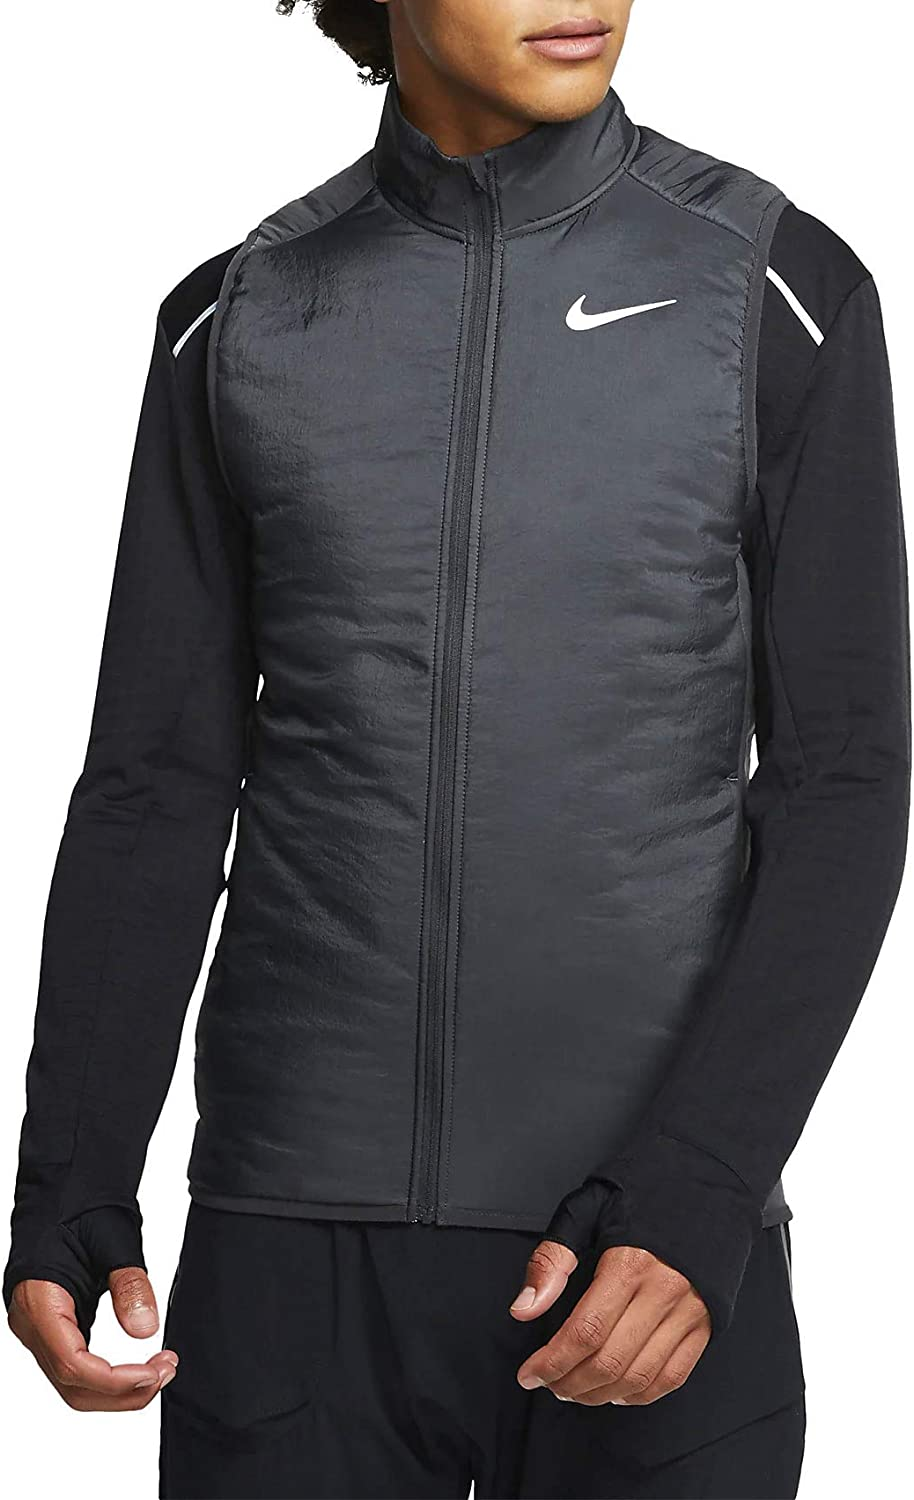 Goma de dinero Recordar Fahrenheit  Nike Men's M Nk Arolyr Vest Jacket, Dark Smoke Grey/Grey Fog/Reflective  Silver, S: Amazon.co.uk: Sports & Outdoors